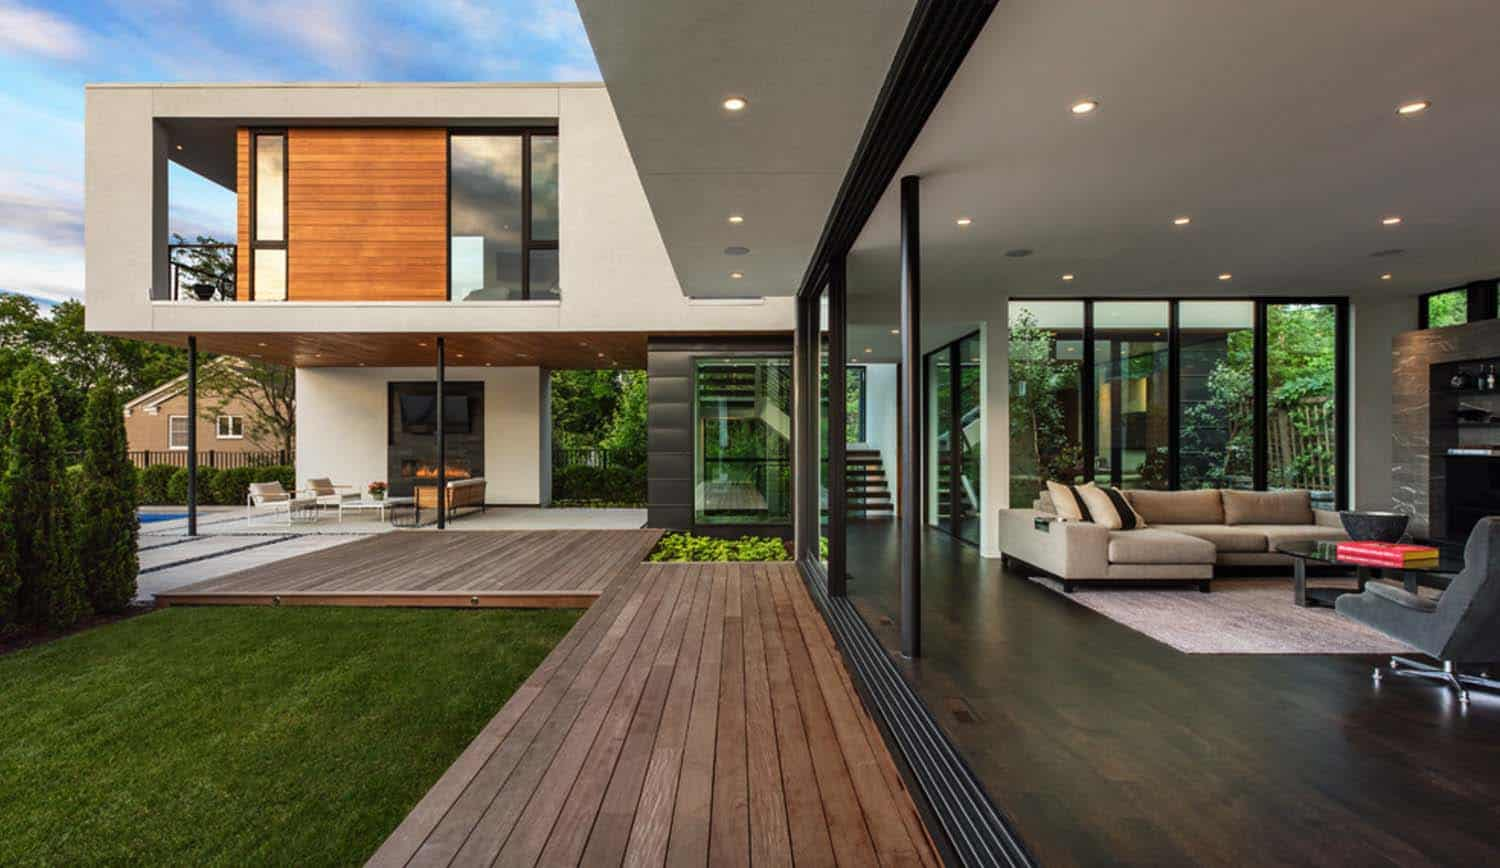 Dynamic Modern Home-Peterssen Keller Architecture-06-1 Kindesign